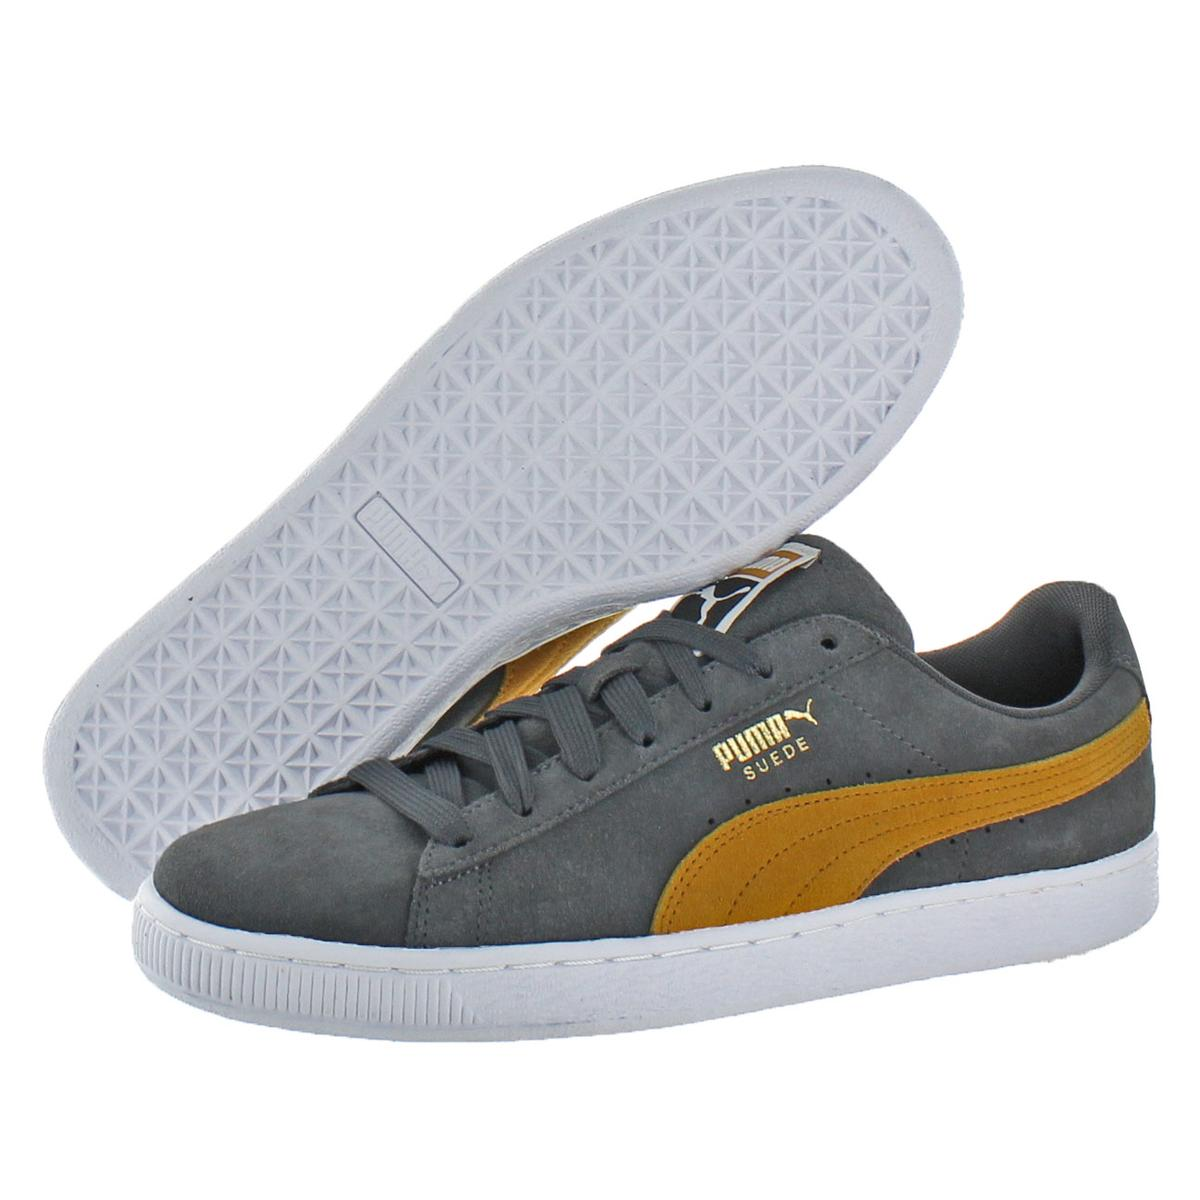 Puma-Suede-Classic-Men-039-s-Fashion-Sneakers-Shoes thumbnail 22